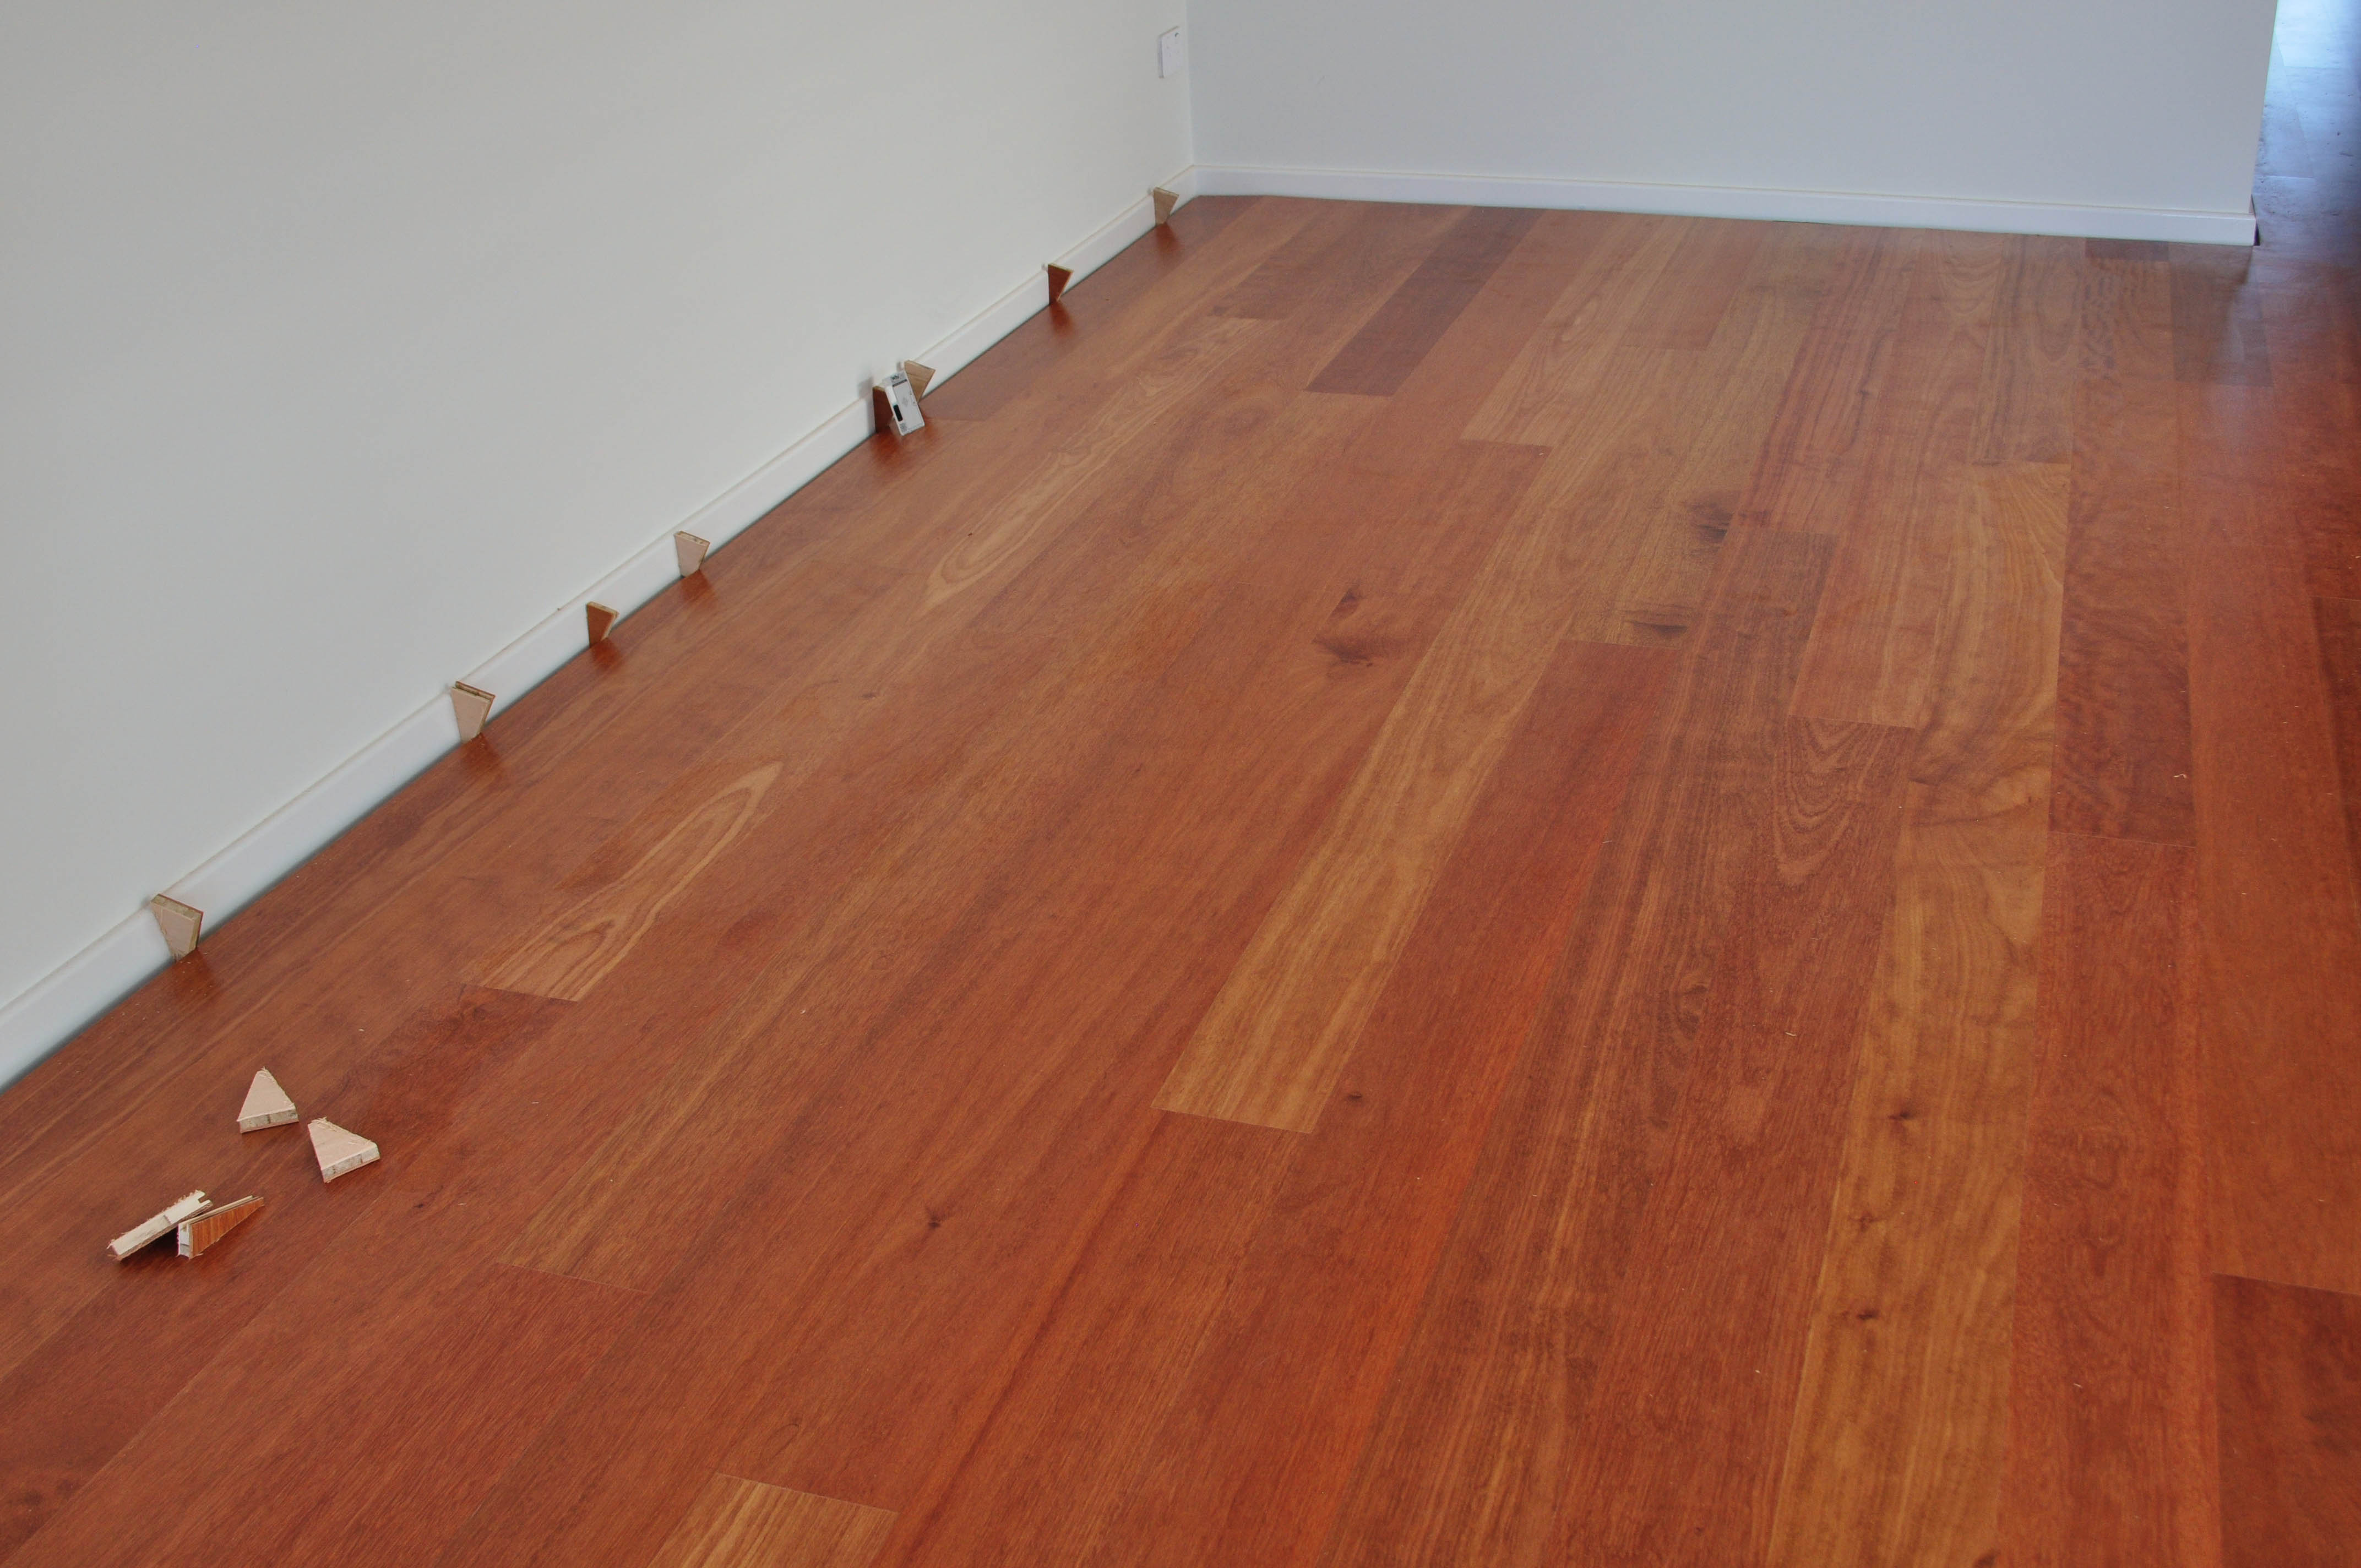 Showing a kempes hardwood timber floor  being installed by Concord Floors in a home in Melton